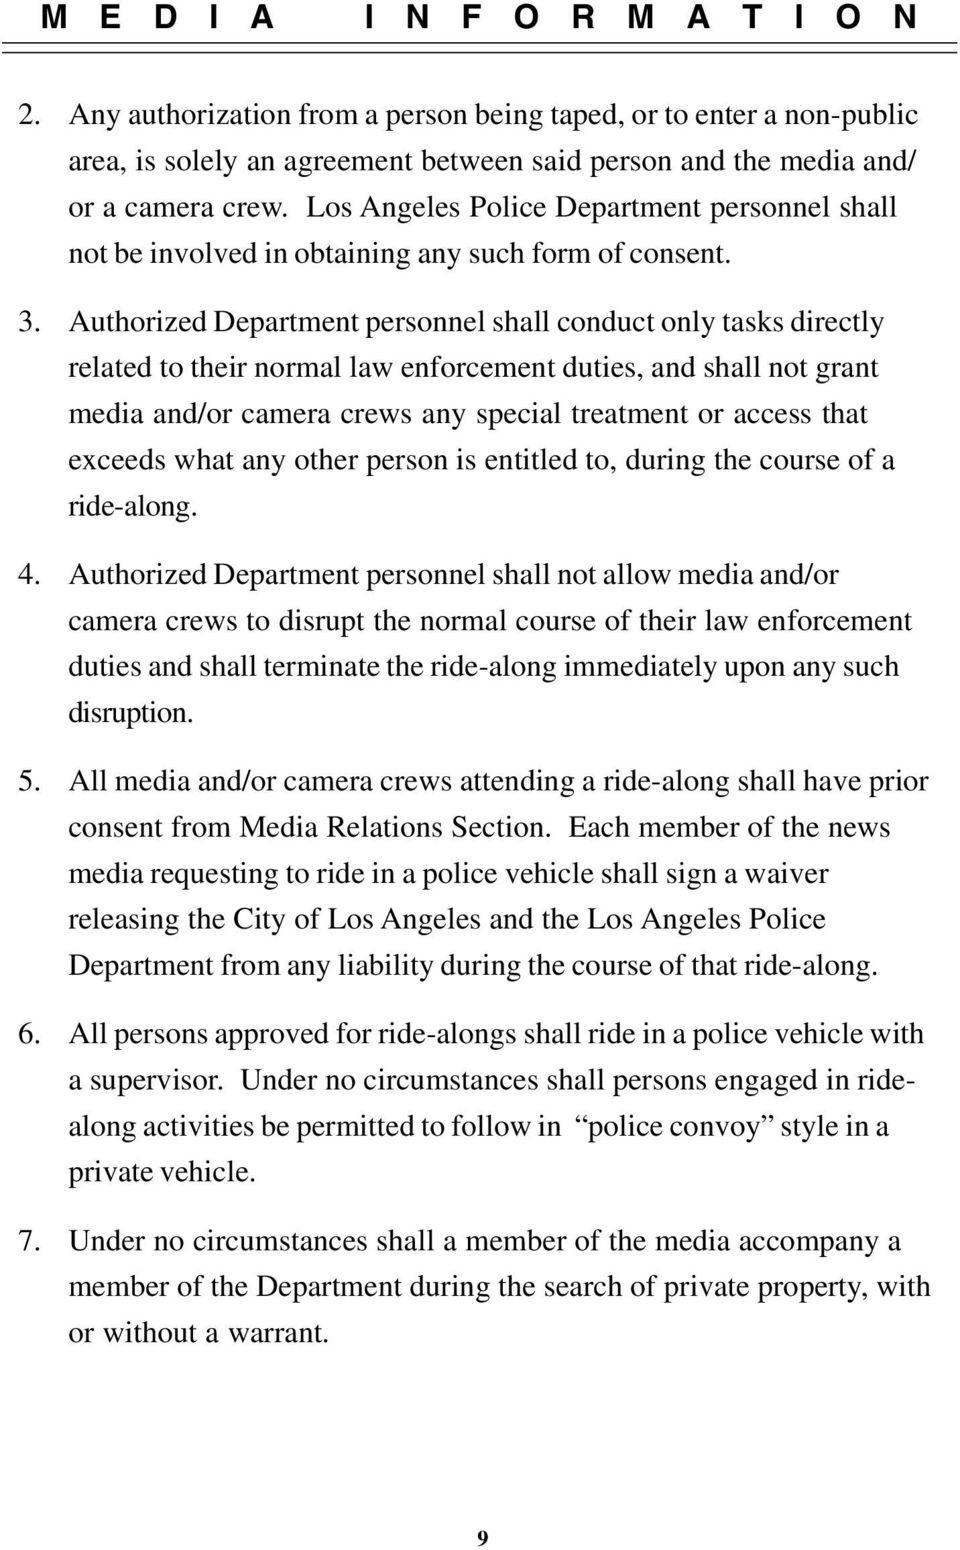 Authorized Department personnel shall conduct only tasks directly related to their normal law enforcement duties, and shall not grant media and/or camera crews any special treatment or access that